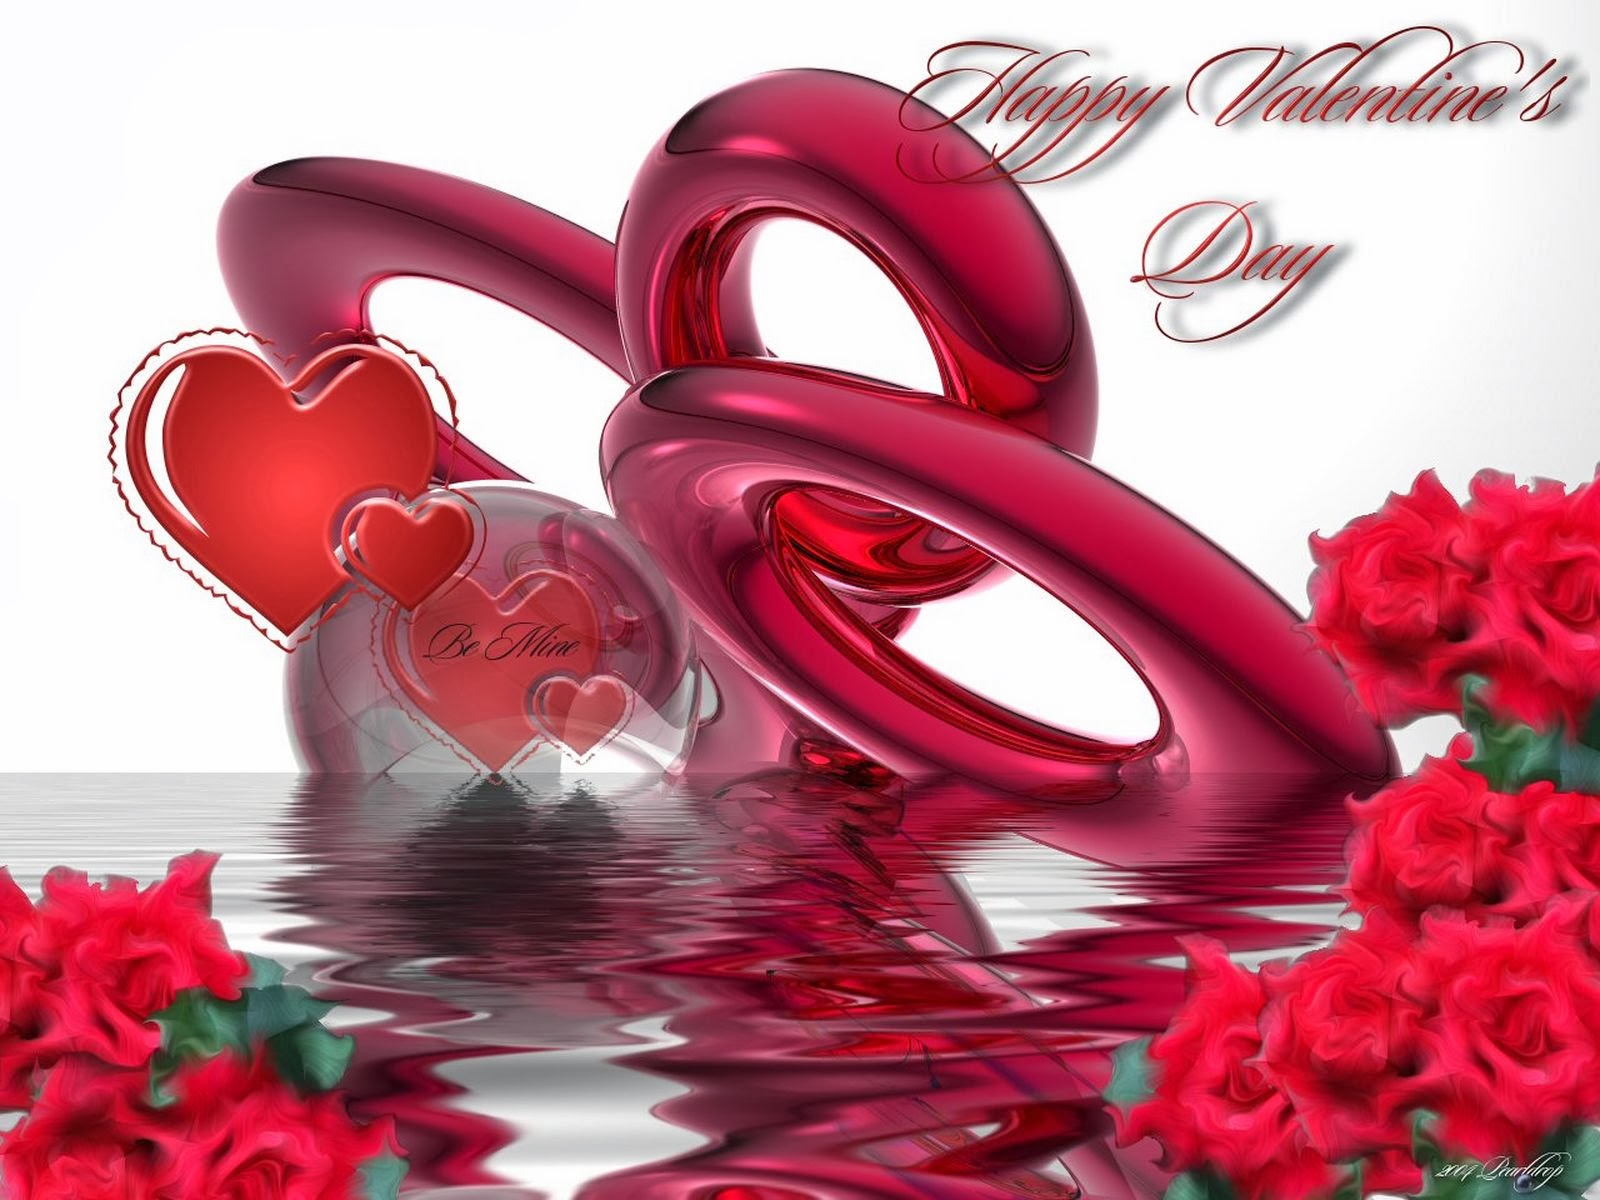 valentines day heart-shaped full hd wallpapers for 2014